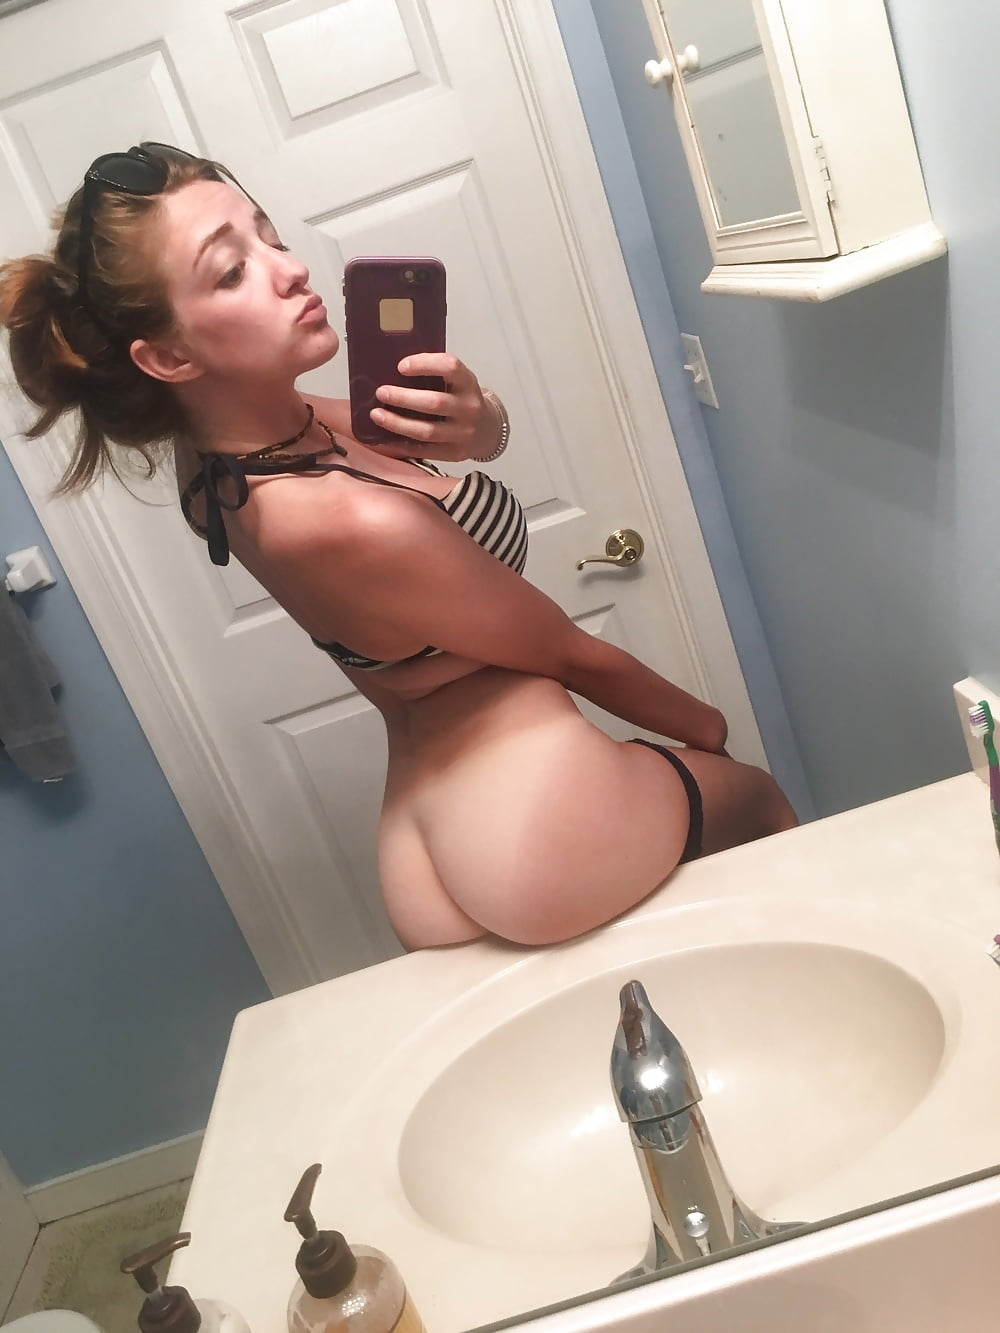 Bathroom selfie pictures search